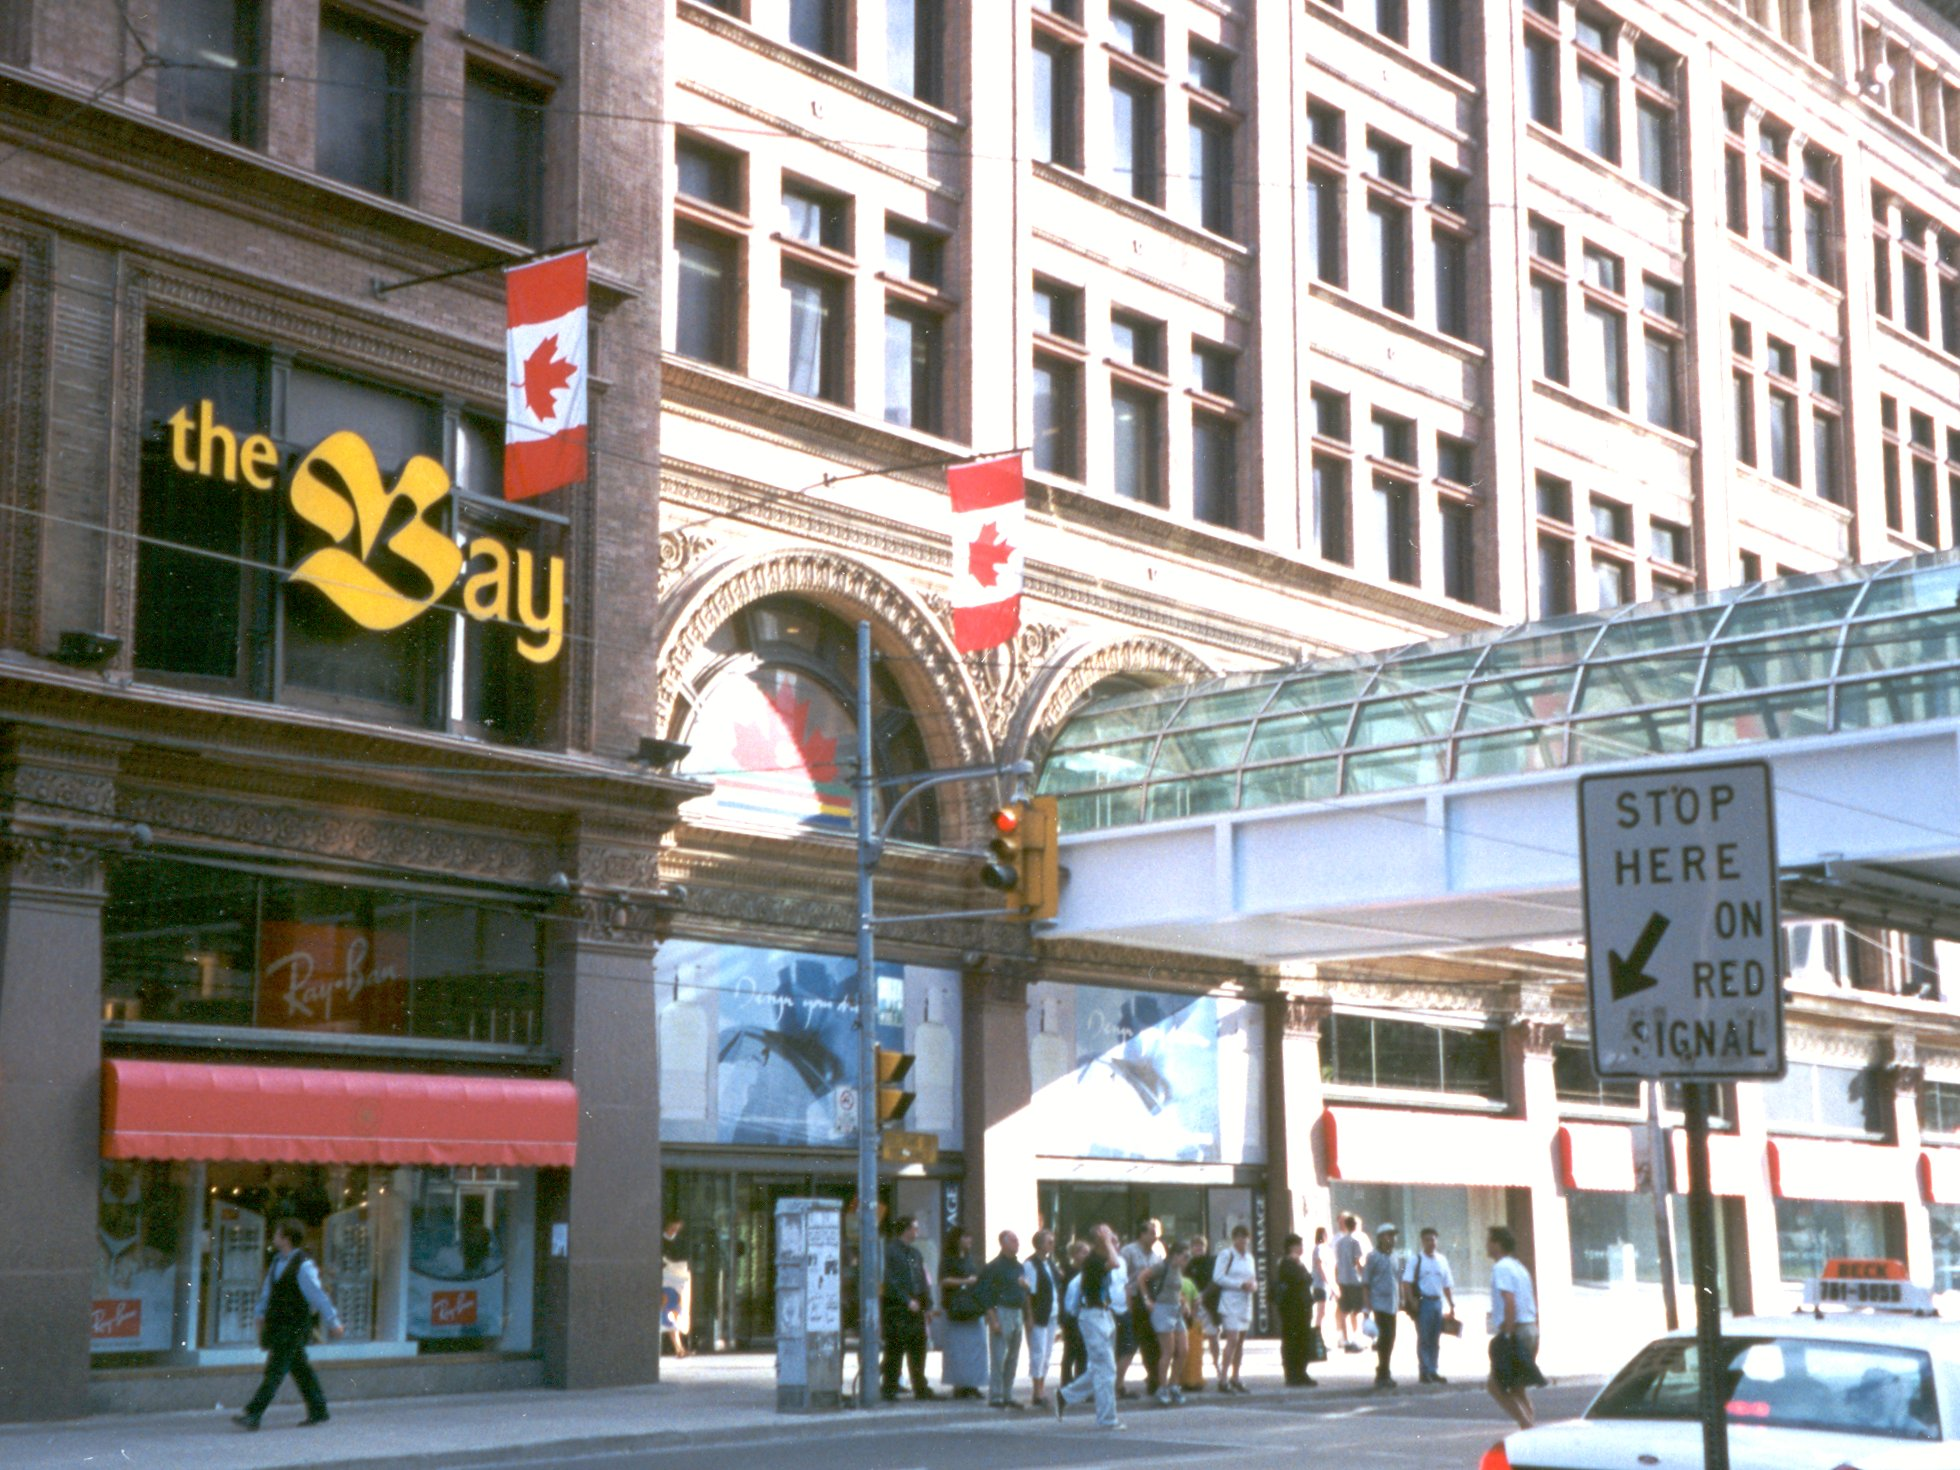 For daily needs, the corner store supplied the needs of Toronto's residents. The Bay at Queen and Yonge Streets formerly the Robert Simpson Company (Simpson's) Robert Simpson was born in Inverness, Scotland in